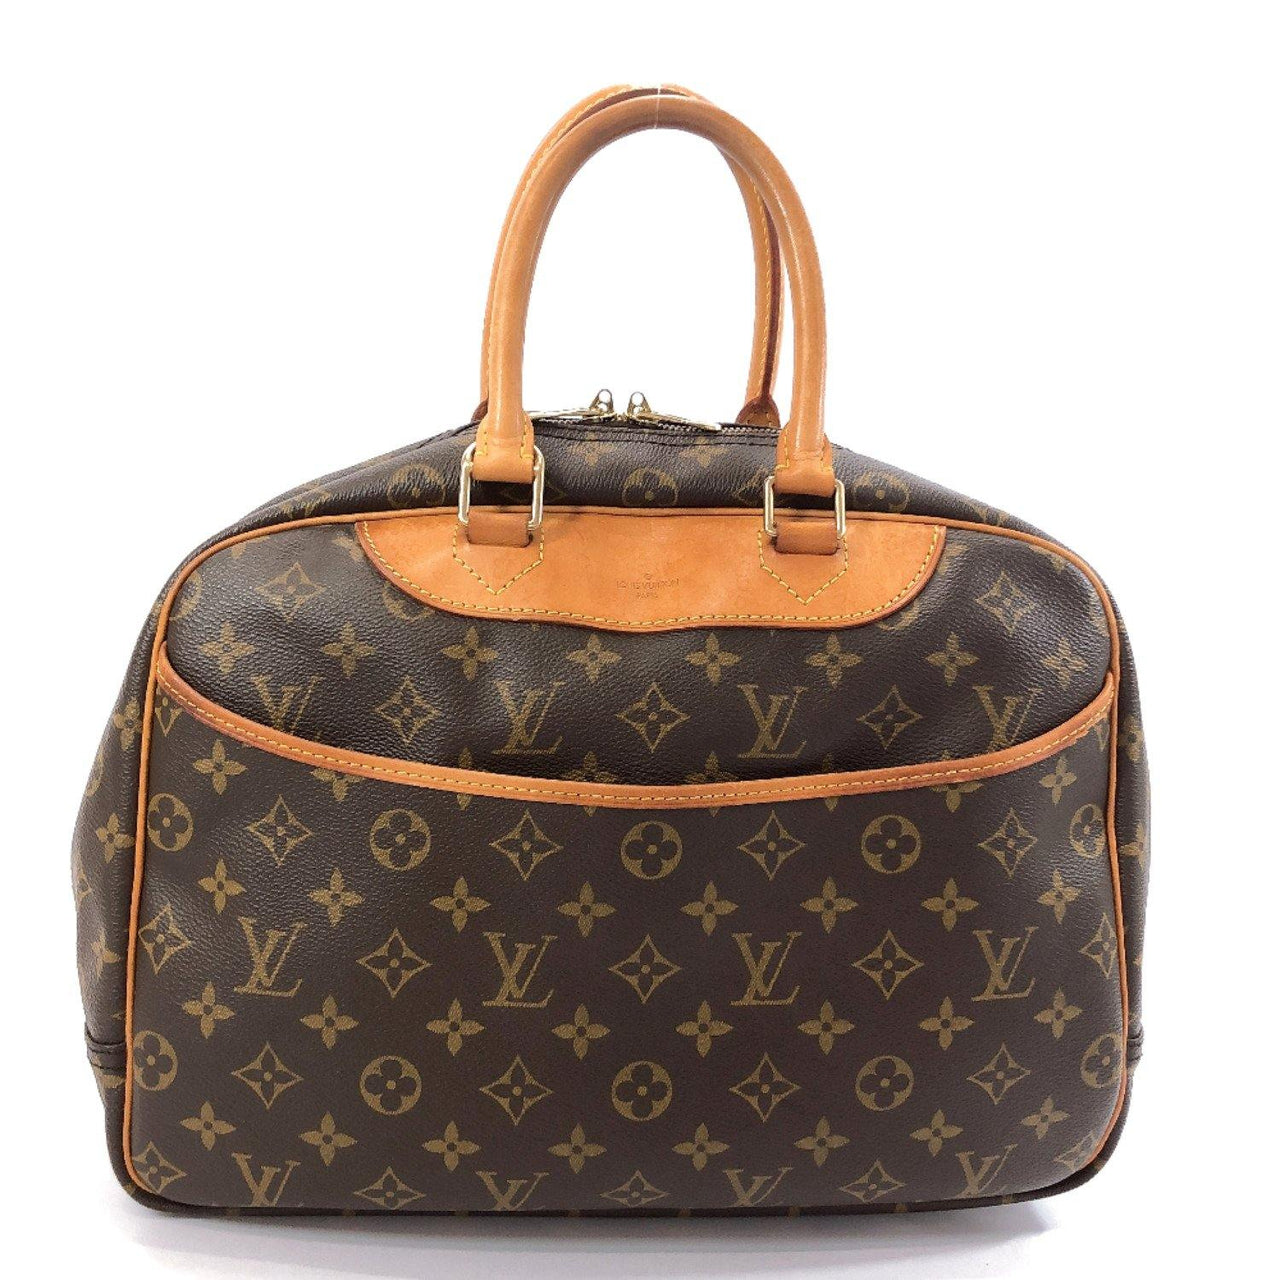 LOUIS VUITTON Handbag M47270 Deauville Monogram canvas Brown Women Used - JP-BRANDS.com